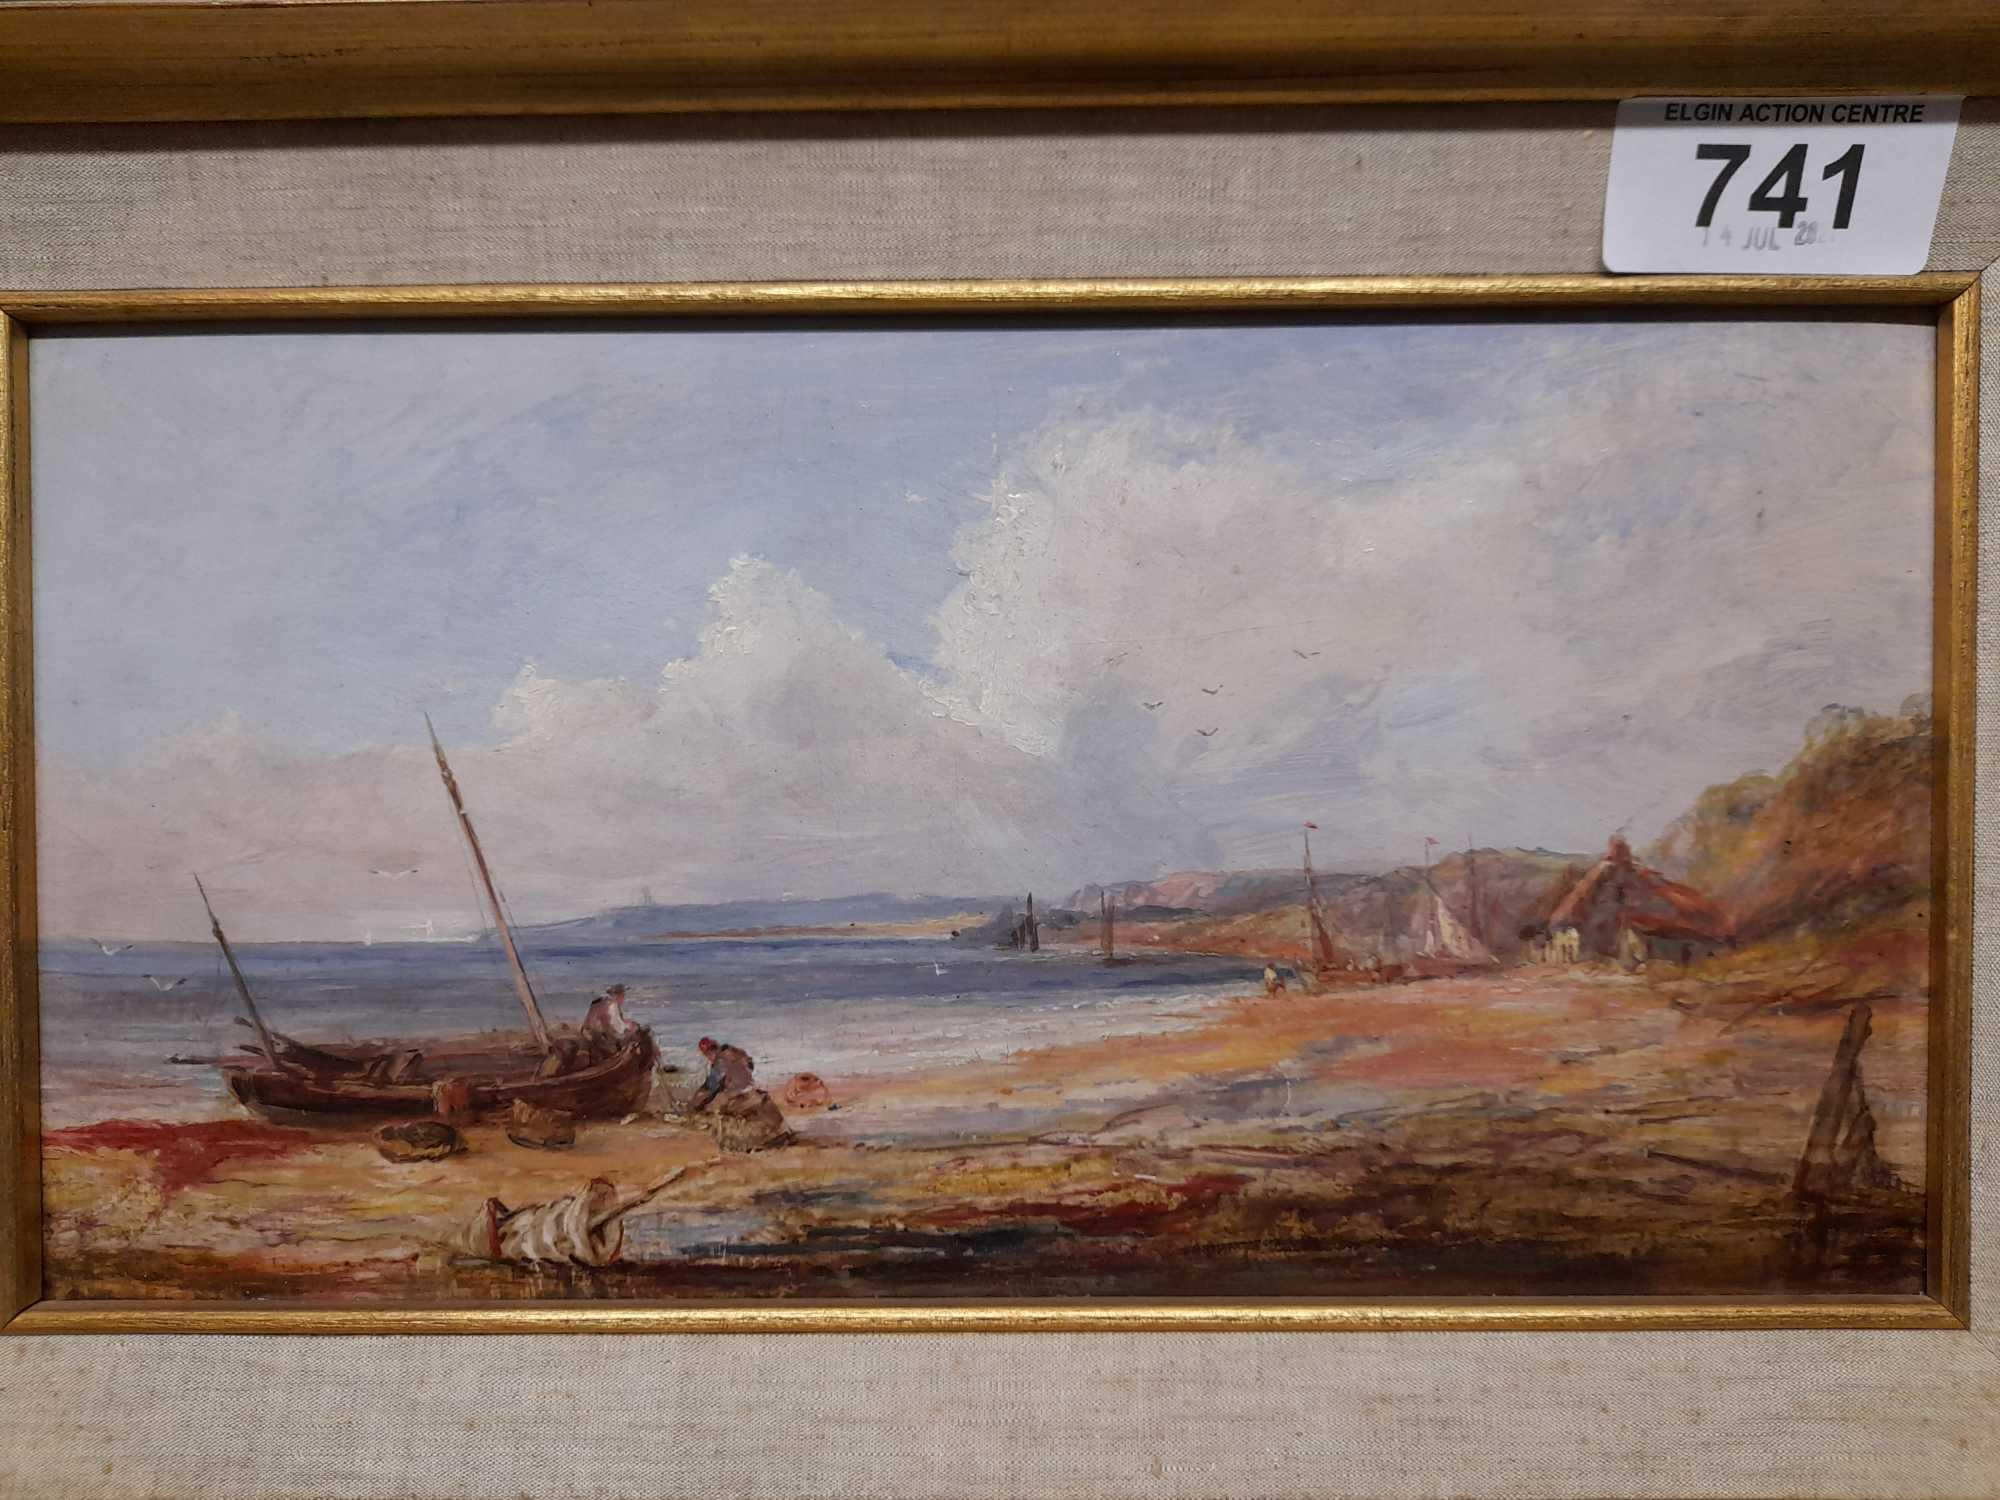 OIL PAINTING SEASCAPE UNSIGNED - Image 2 of 4